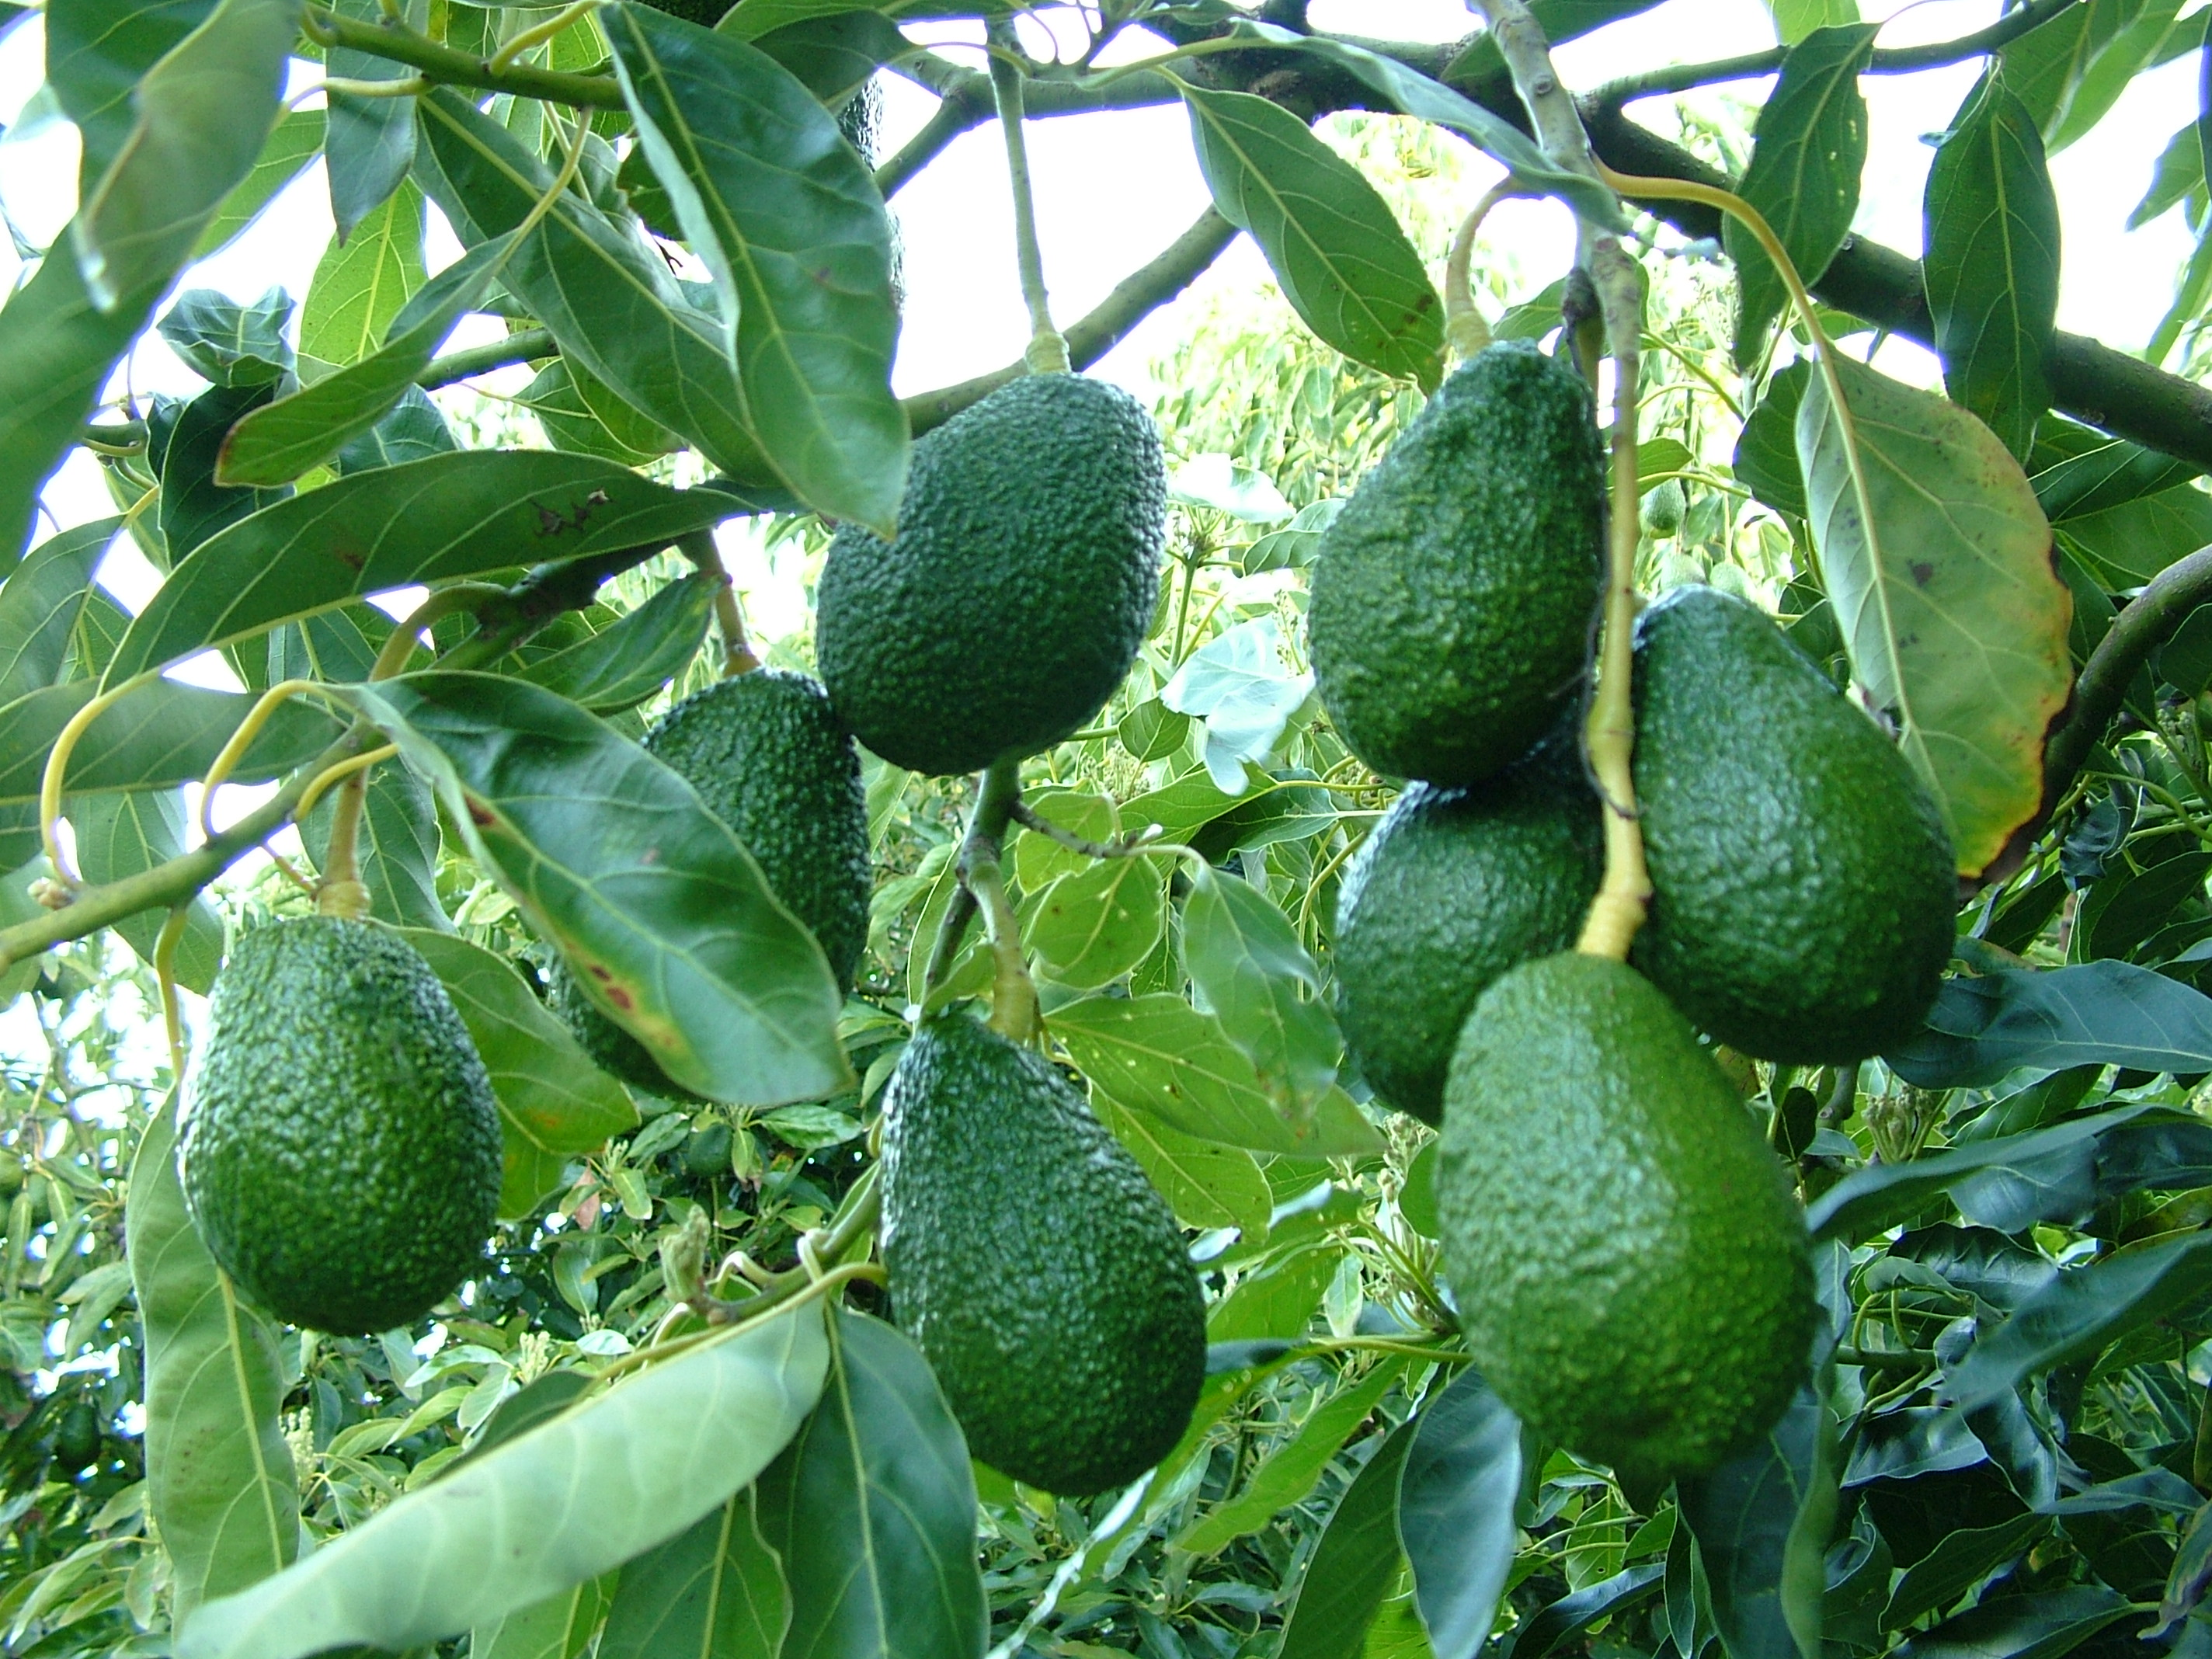 Avocado - Fruit bunch